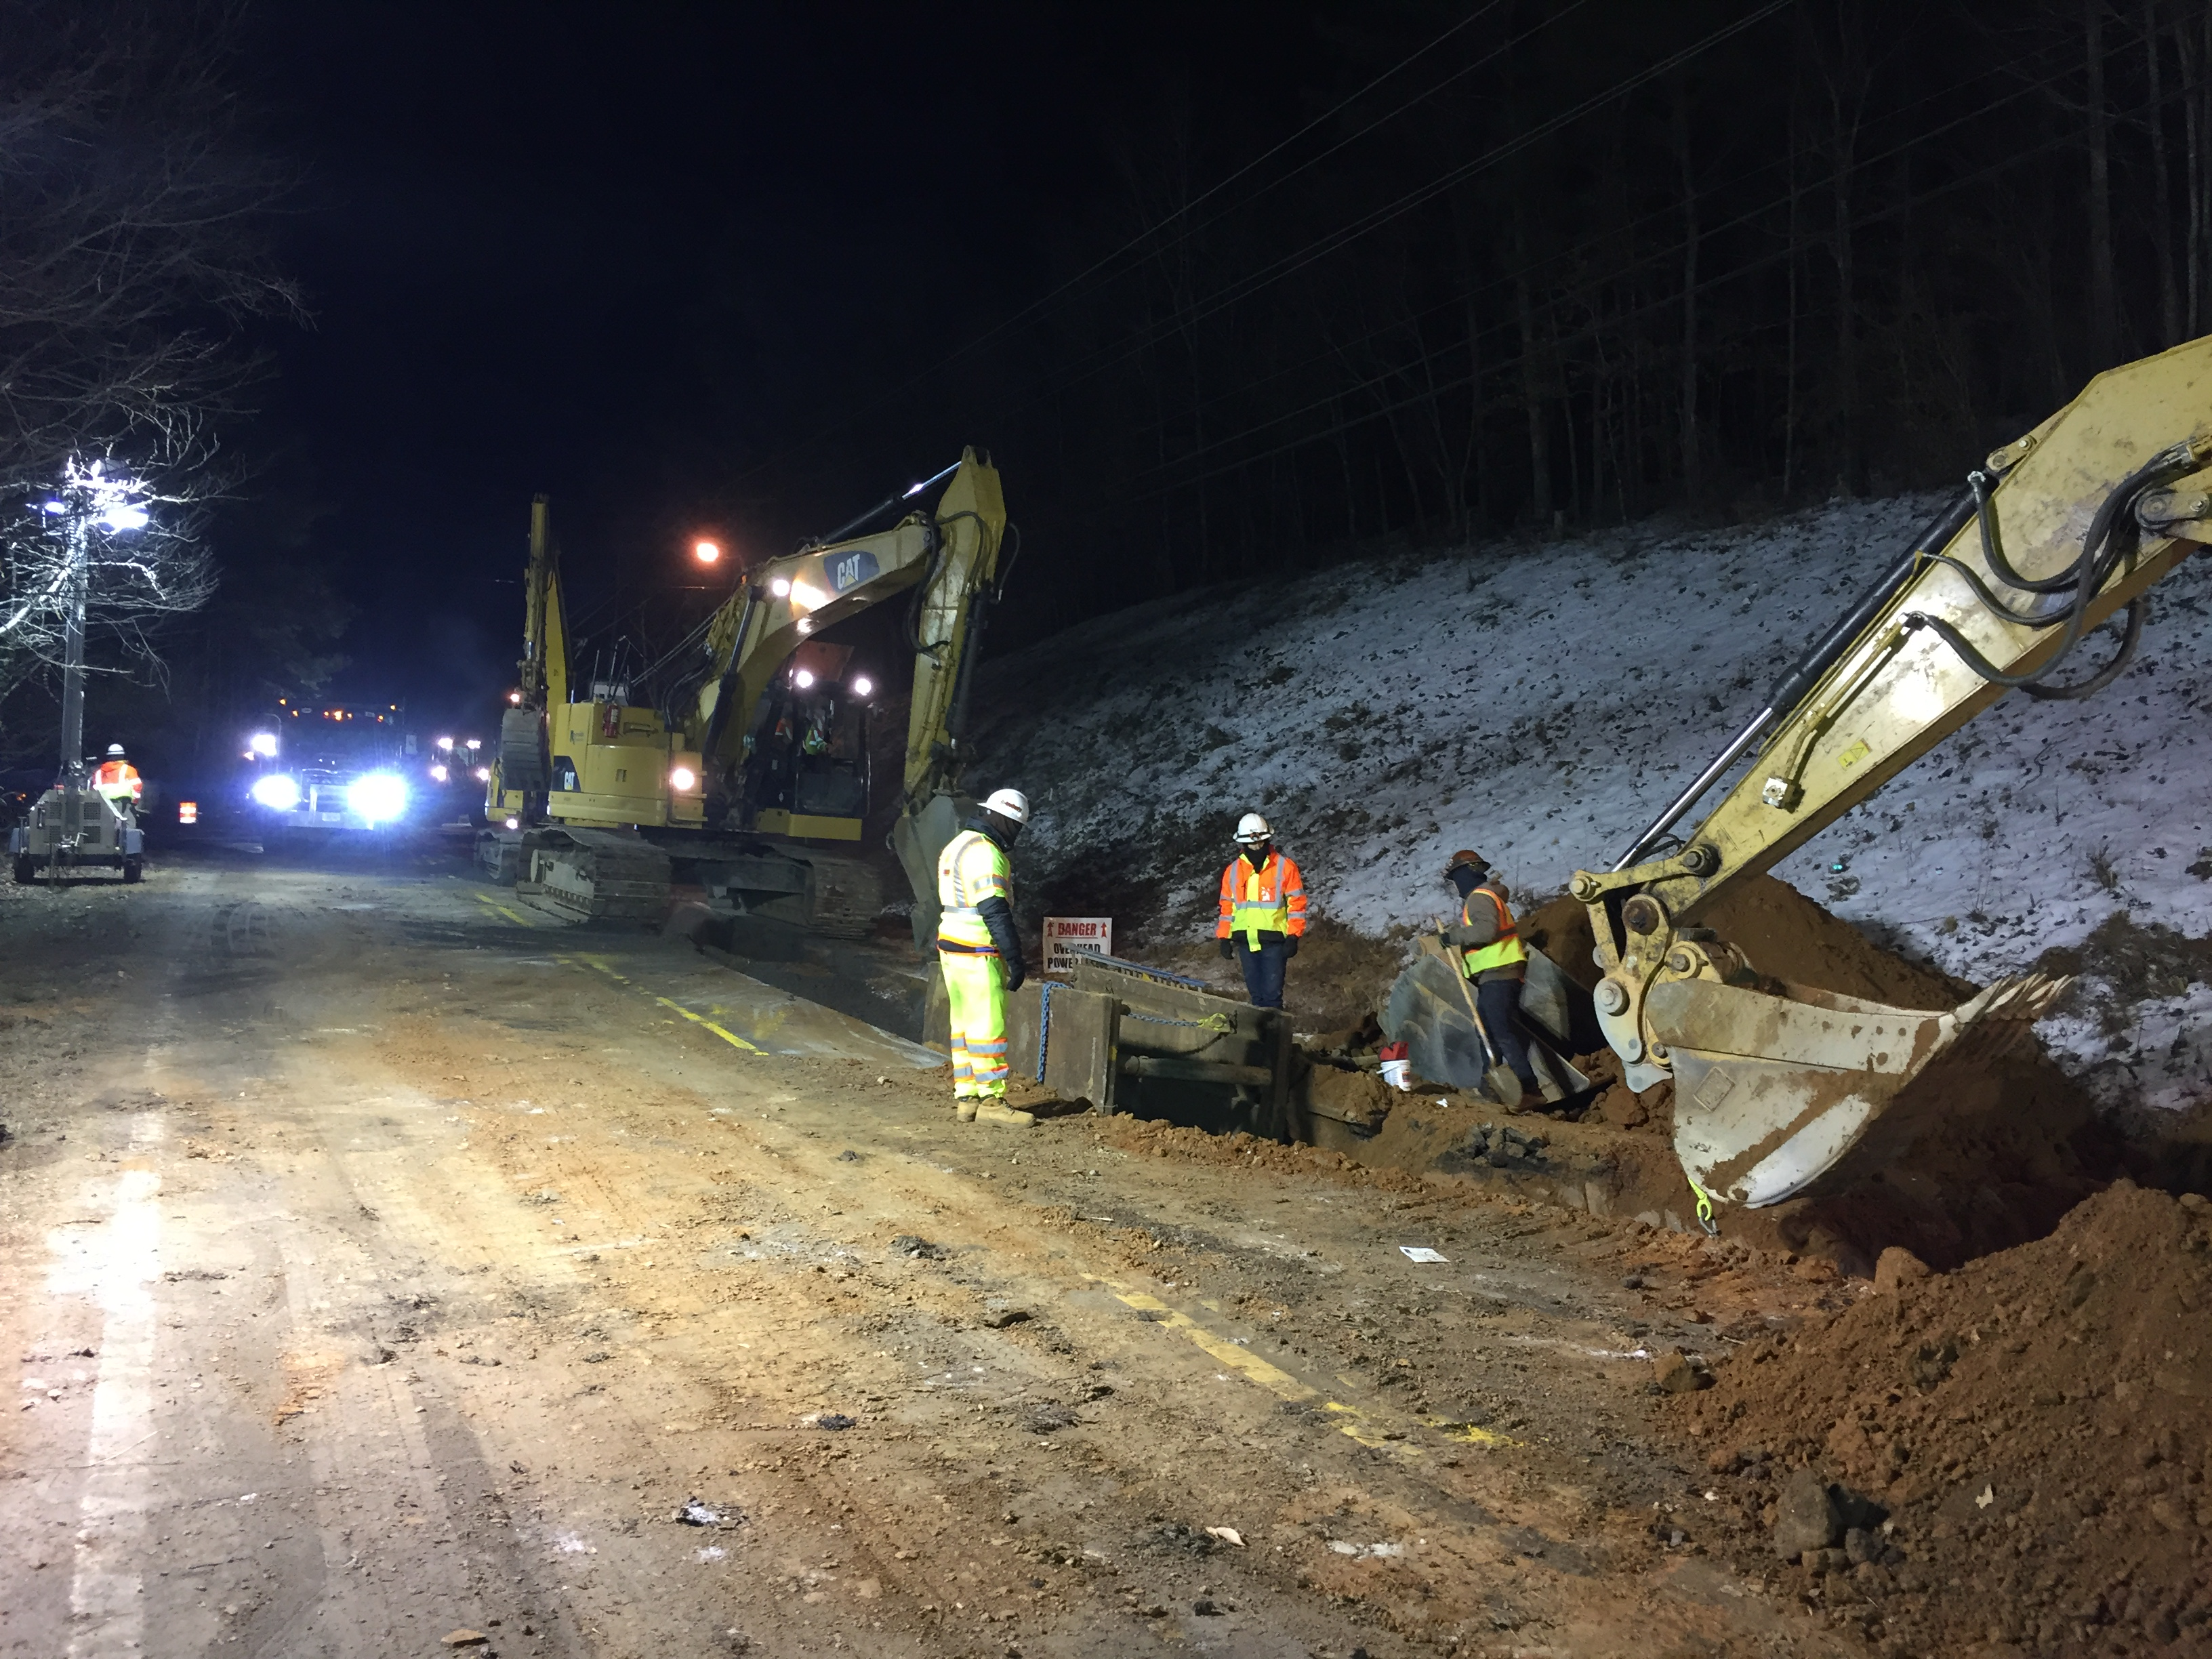 Night work concludes on Barnwell Road; lane closures expected during daytime hours